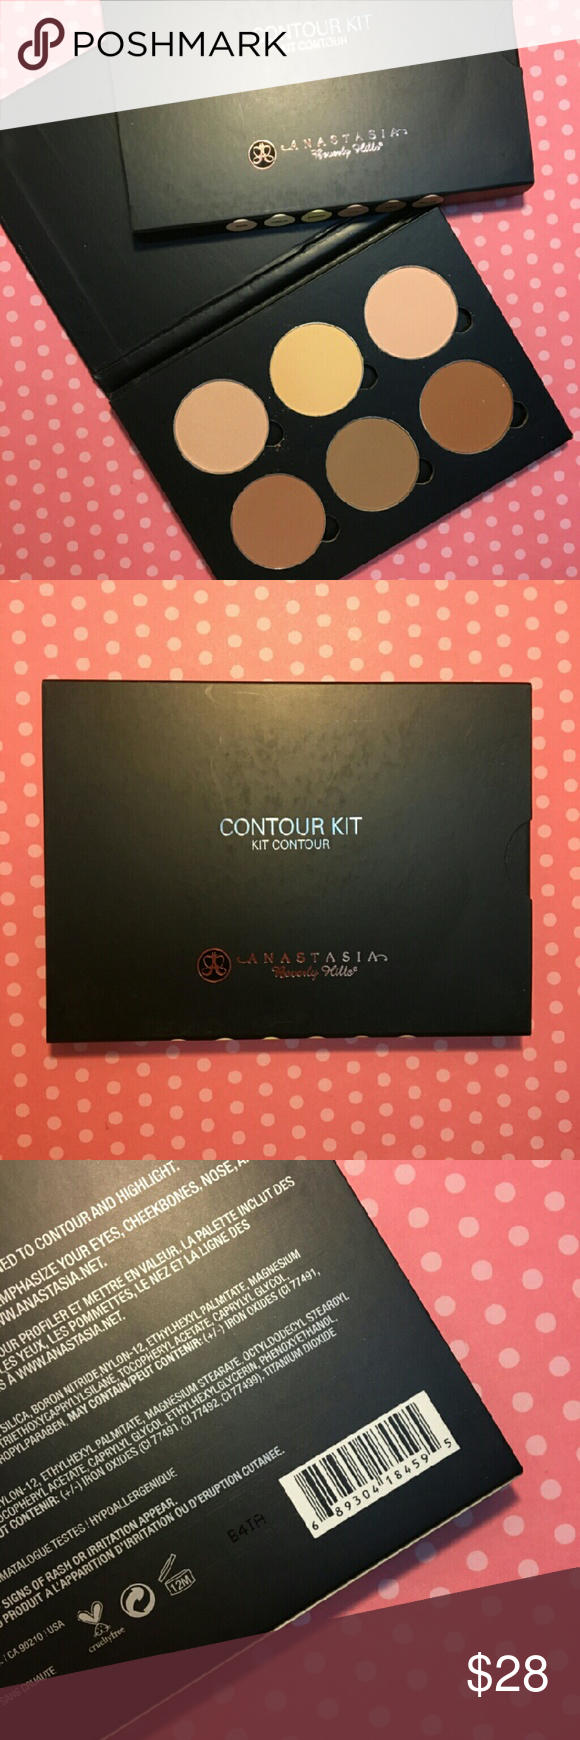 Anastasia Beverly Hills Contour Kit Powder Formula Light to Medium  - New - Authentic / Original - I ship every Monday Wednesday and Friday - You can bundle to save on shipping Anastasia Beverly Hills Makeup Face Powder